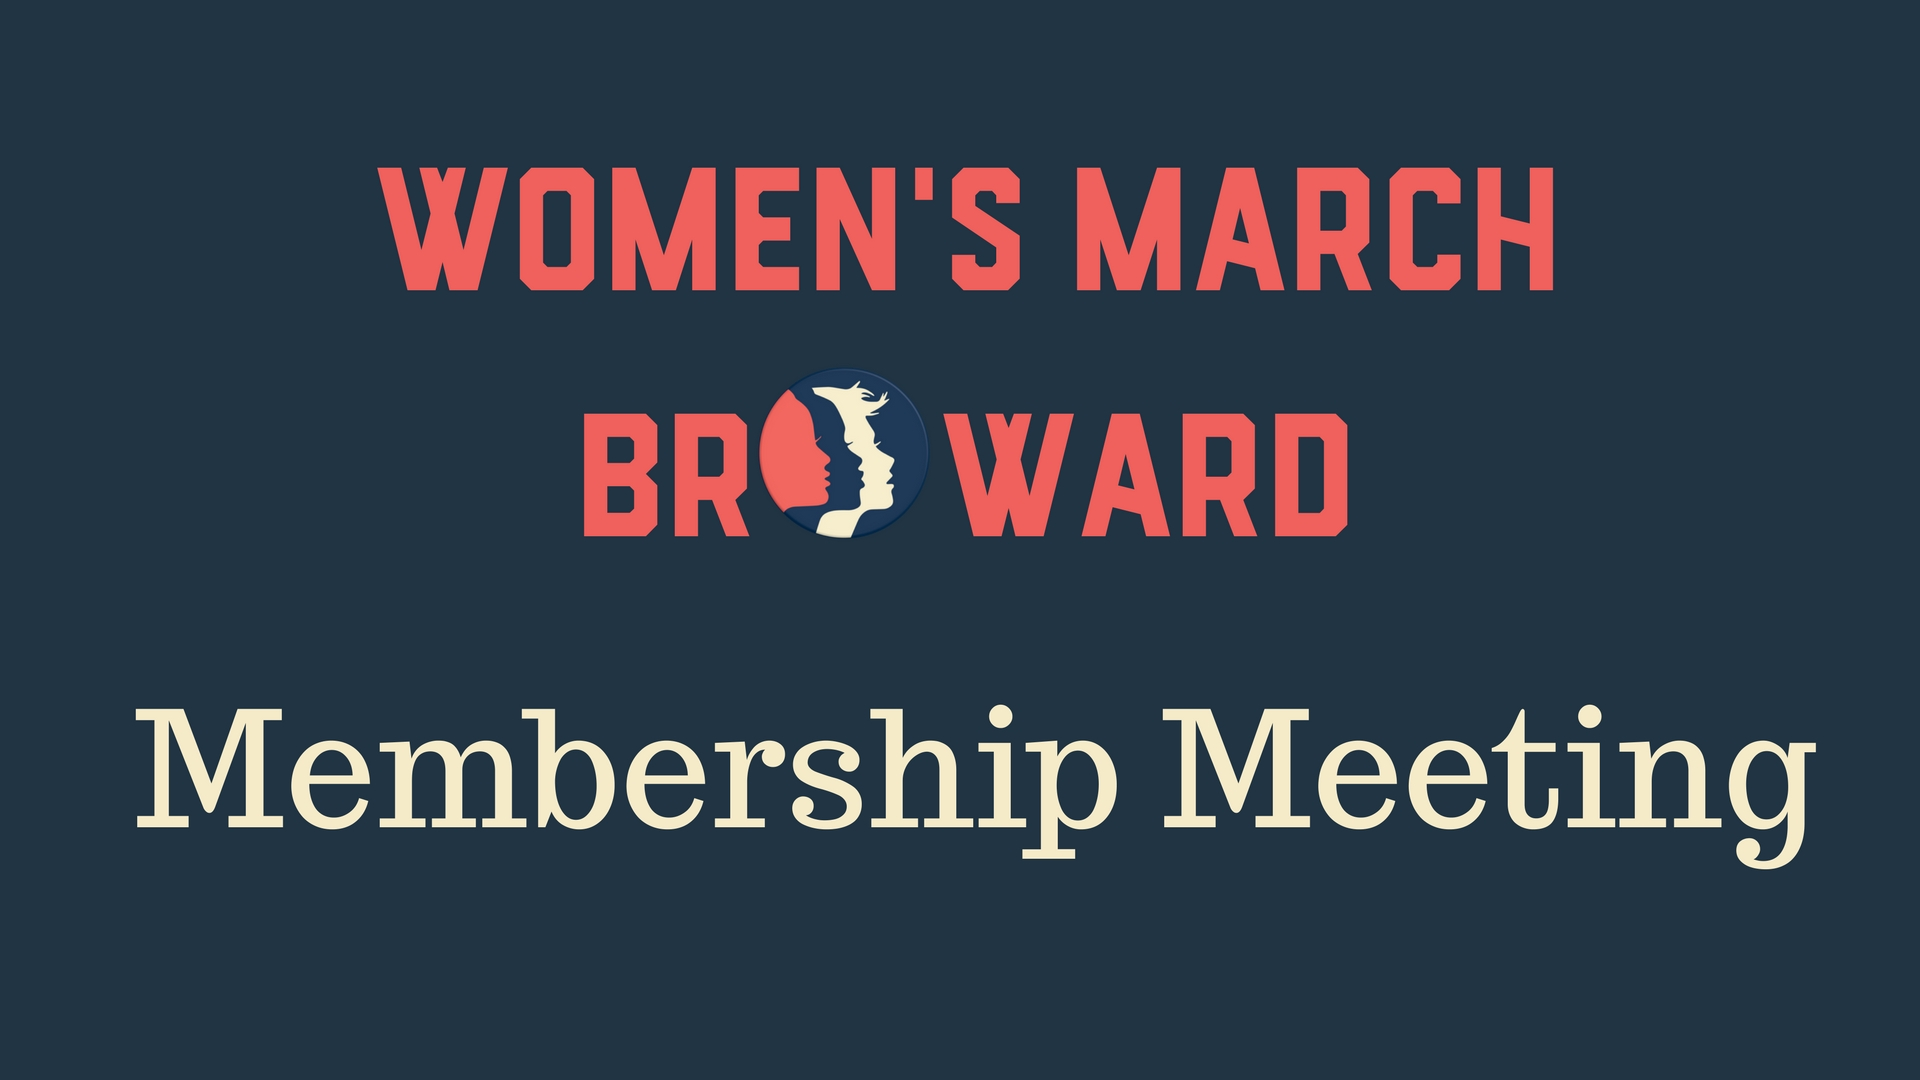 9-13-18: Membership Meeting - Please join Women's March Broward at our Membership Meeting where the topic will be Puerto Rico: Past, Present, FutureJoin us for what promises to be an amazing panel discussion focused on Puerto Rico, including the Jones Act, the Puerto Rico Oversight Management and Economic Stability Act (PROMESA), Hurricane Maria – a year later and next steps. Panelists include:Maria J. Torres-López is the Executive Board Secretary for Women's March FL as well as the Palm Beach County Chapter Co-Captain and the founder of Diáspora en Resistencia. She was born and raised in Puerto Rico, where she began her social, political and civic contributions by being an involved citizen and carrying out her right of free speech in the political arena, civic, and humanitarian engagements. Maria became a political precinct volunteer and helped organize protests as a member of the University Federation Pro-Independence (FUPI). She also engaged in humanitarian actions by feeding the homeless and collecting and donating to foster homes. She engaged in civil disobedience during major conflicts in Puerto Rico, such as the struggle to remove the US Navy base from Vieques. She has worked and volunteered with multiple local, national and international organizations to expand and lift the voices of minority communities and seek equal justice for all. Maria is a tireless fighter for social justice and her country's right to self-determination.Viviana Bonilla López is a proud Boricua who grew up in her beloved San Juan. She is an attorney who currently works defending the civil rights of immigrants. She is passionate about mental health and disability justice, and can't wait for the day that Puerto Rico finally gets its independence.Lisa Santoni Cromar is a proud Puerto Rican woman. She believes strongly that health care (e.g. medical care, healthy food, clean water), education, body autonomy, LGBTQIA+, and disability rights, as well as physical and emotional safety, are hum